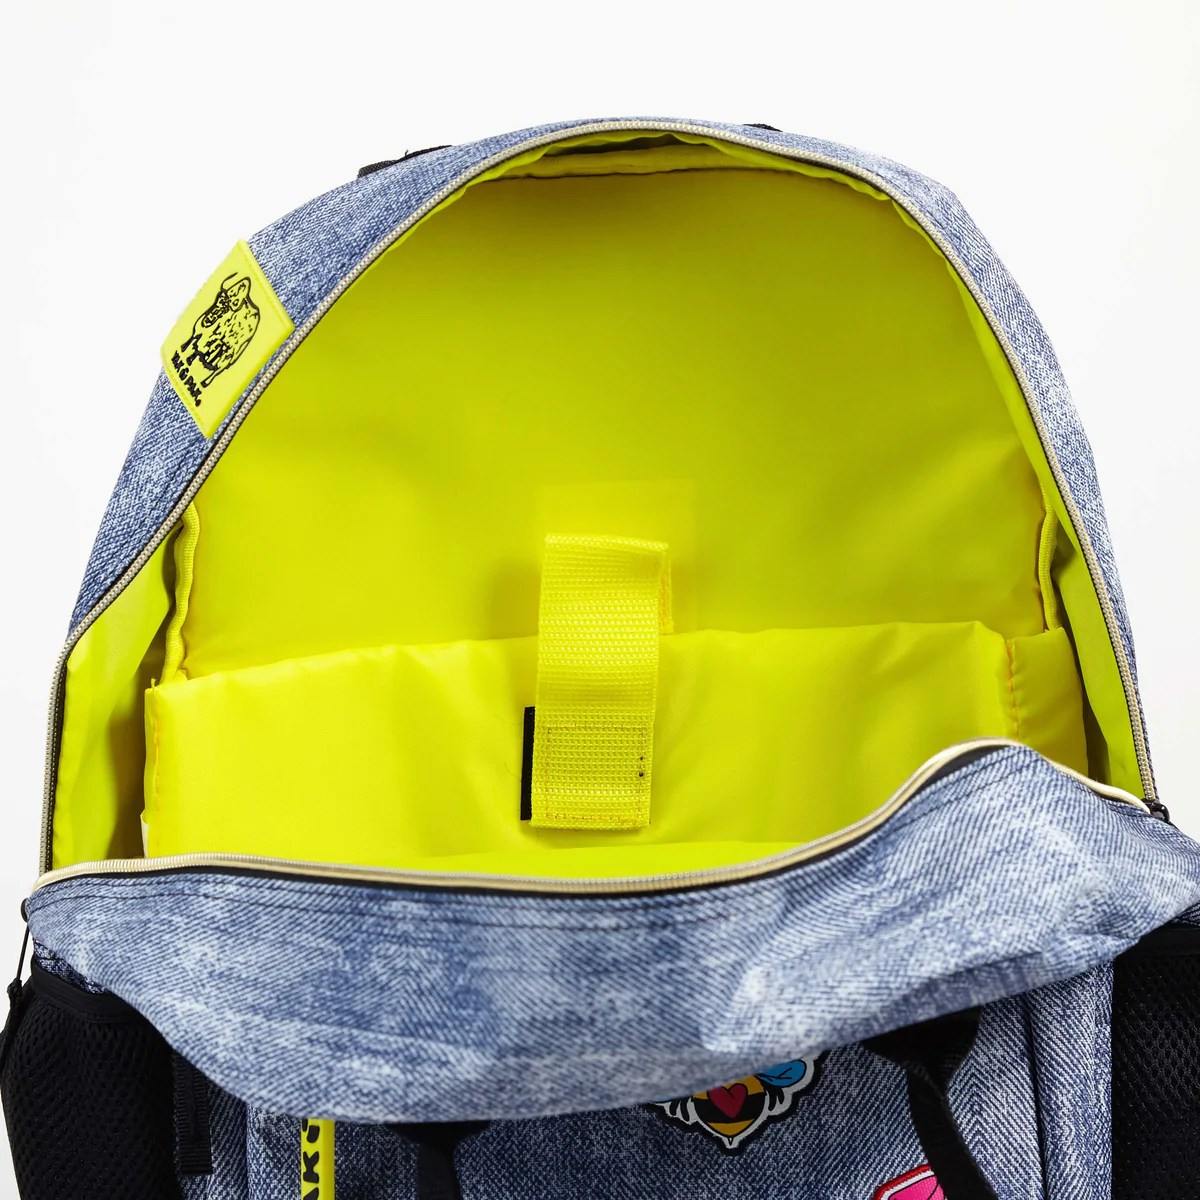 Yak Pak Backpack Denim Jean With Patches Laptop And